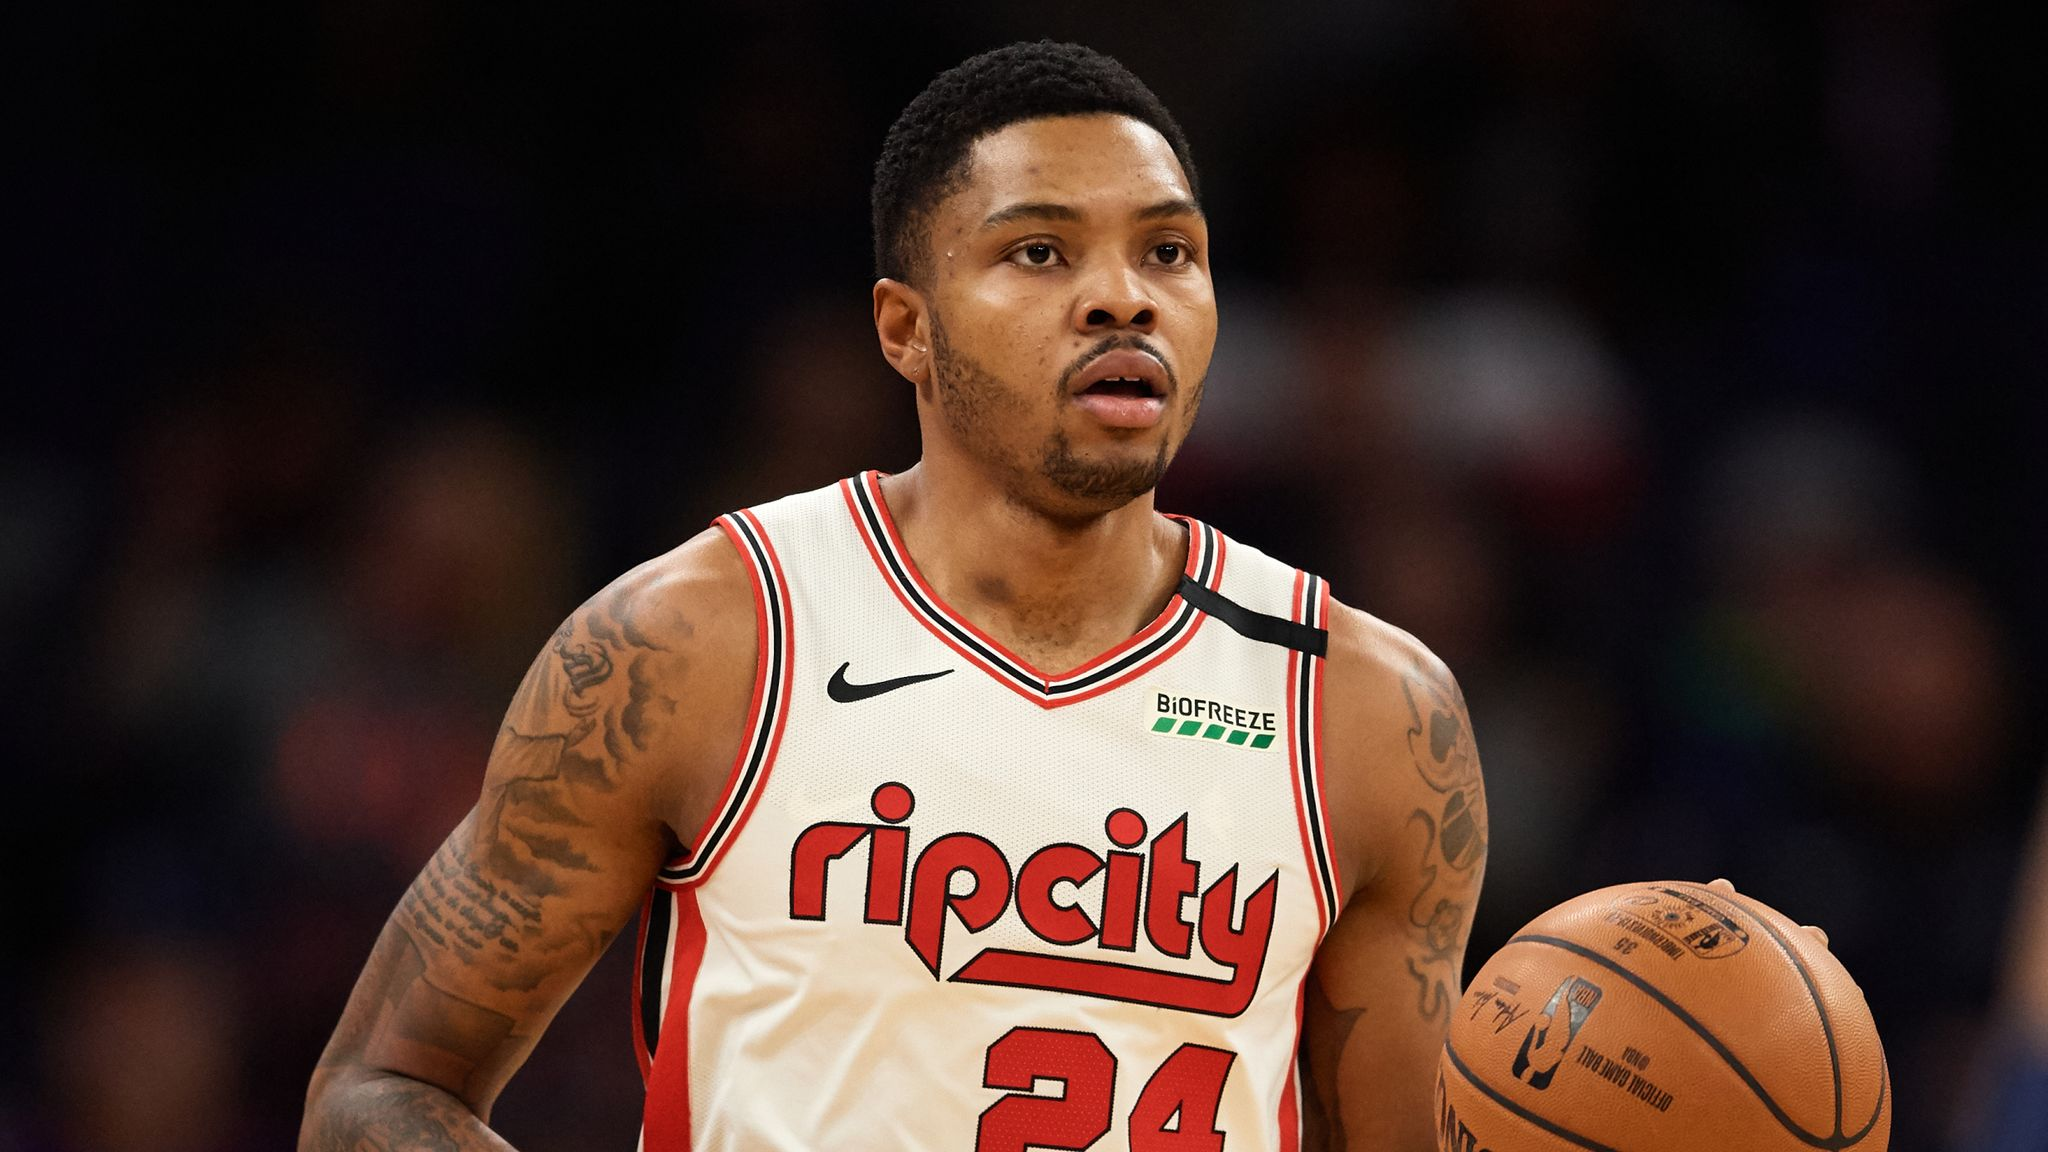 Portland Trail Blazers finalise trade of Kent Bazemore to Sacramento Kings